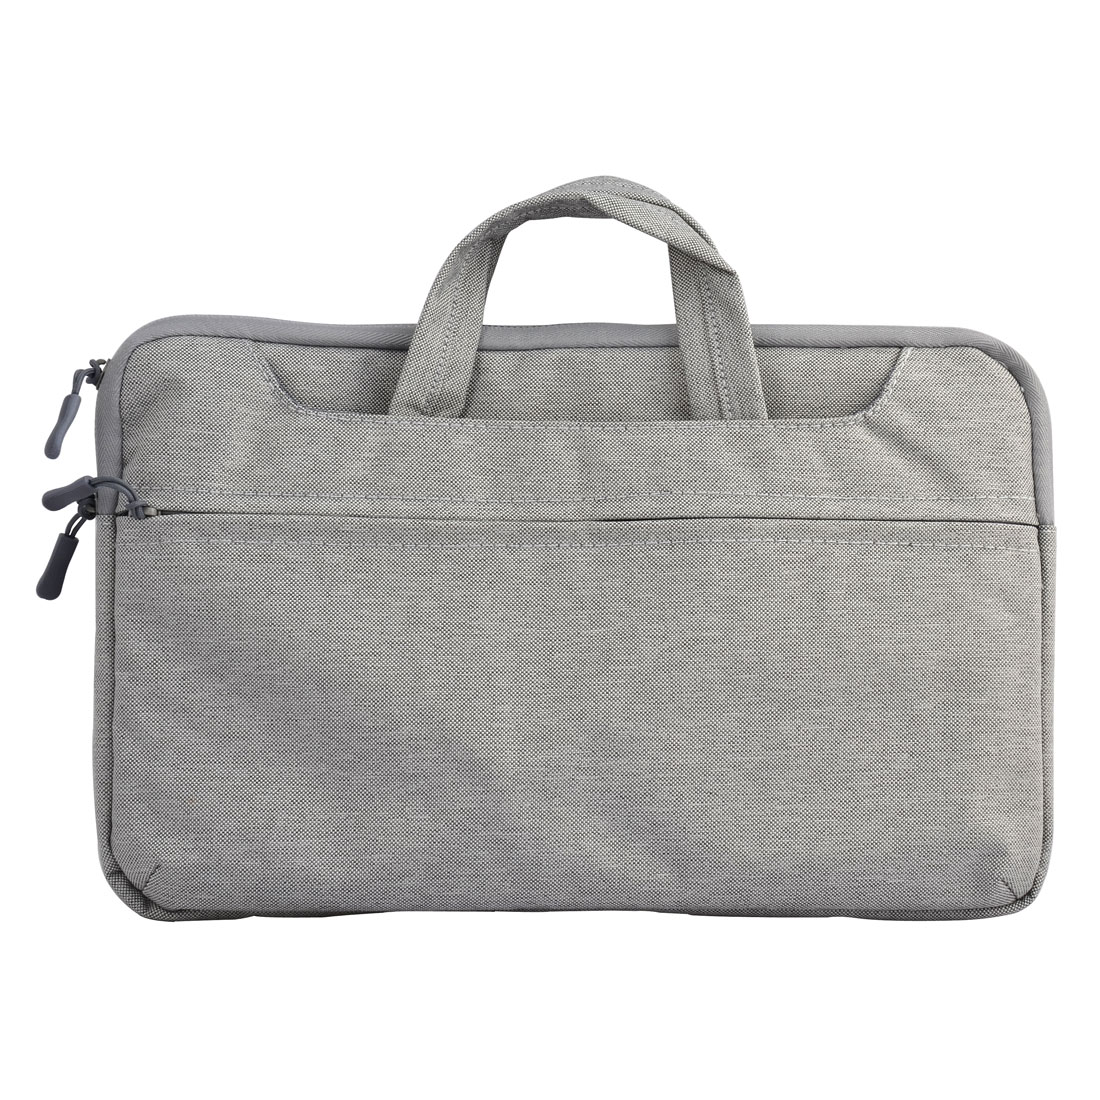 Protective Pouch Carrying Tablet Sleeve Shoulder Bag Case Gray for 11.6 Inch Pad